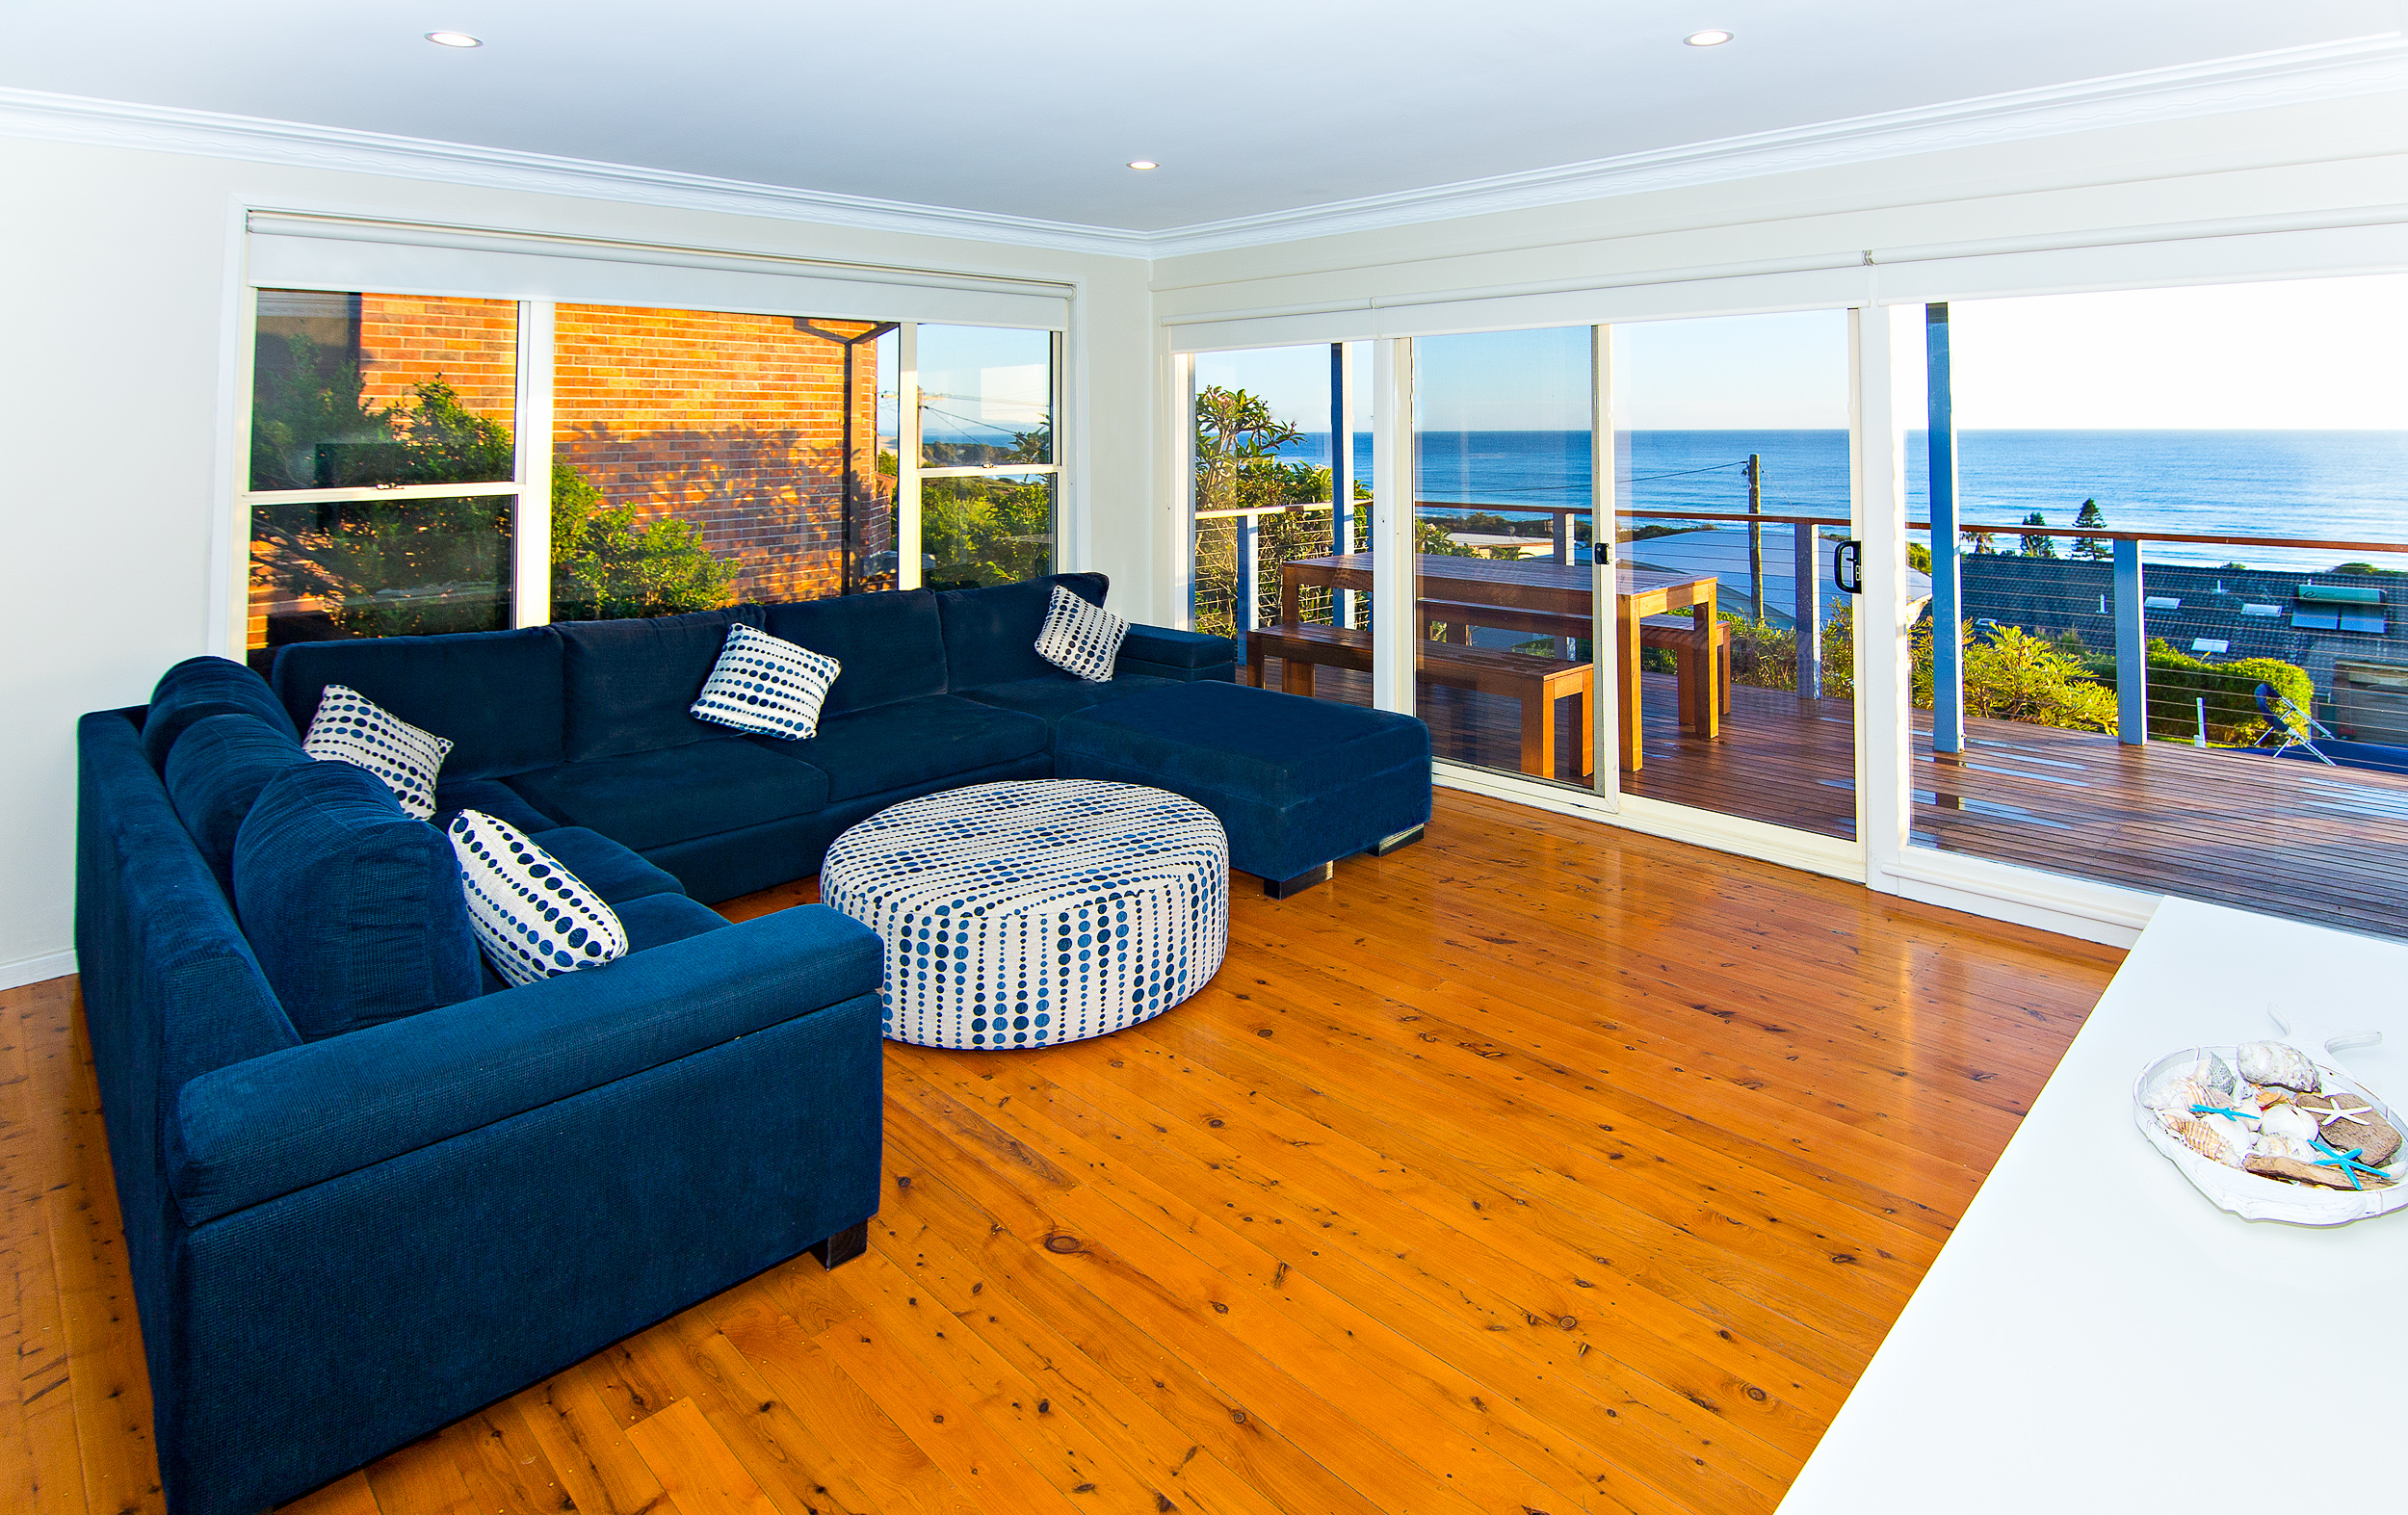 Forster-Accommodation-and-Pet-Friendly-Holiday-House-NSW-live-in-the-living-room